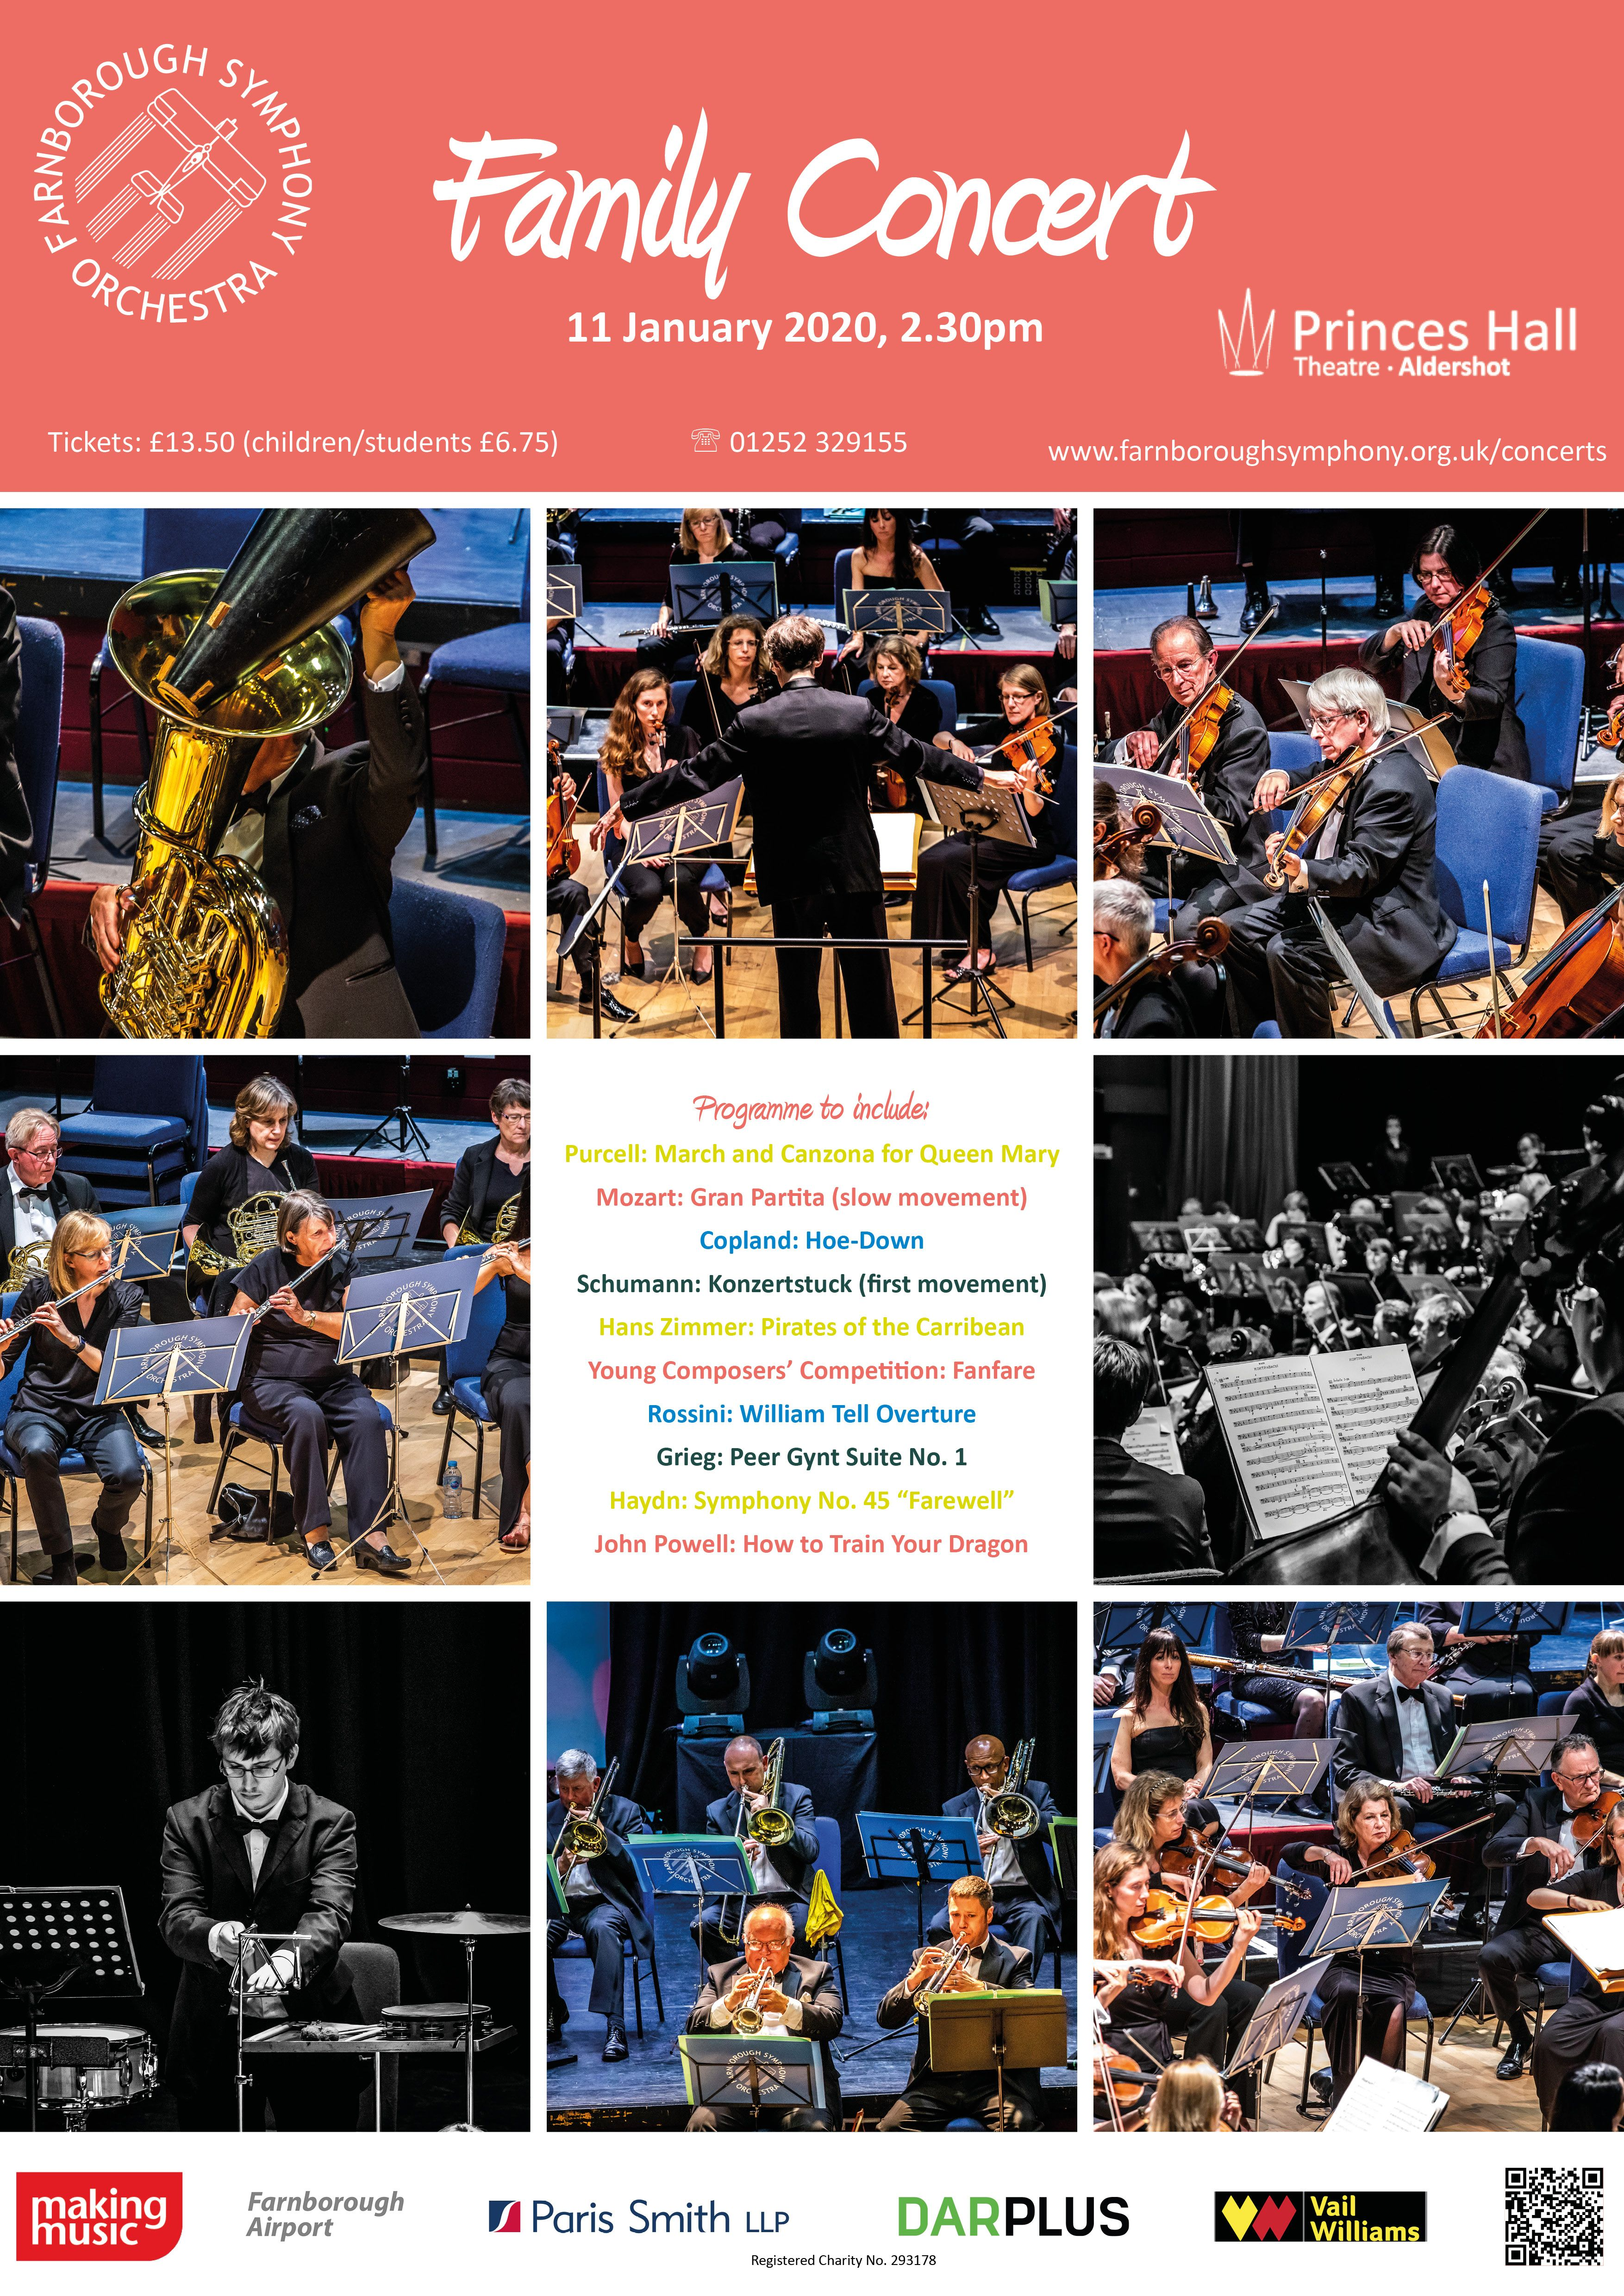 Flier for family concert showing pictures of orchestras playing